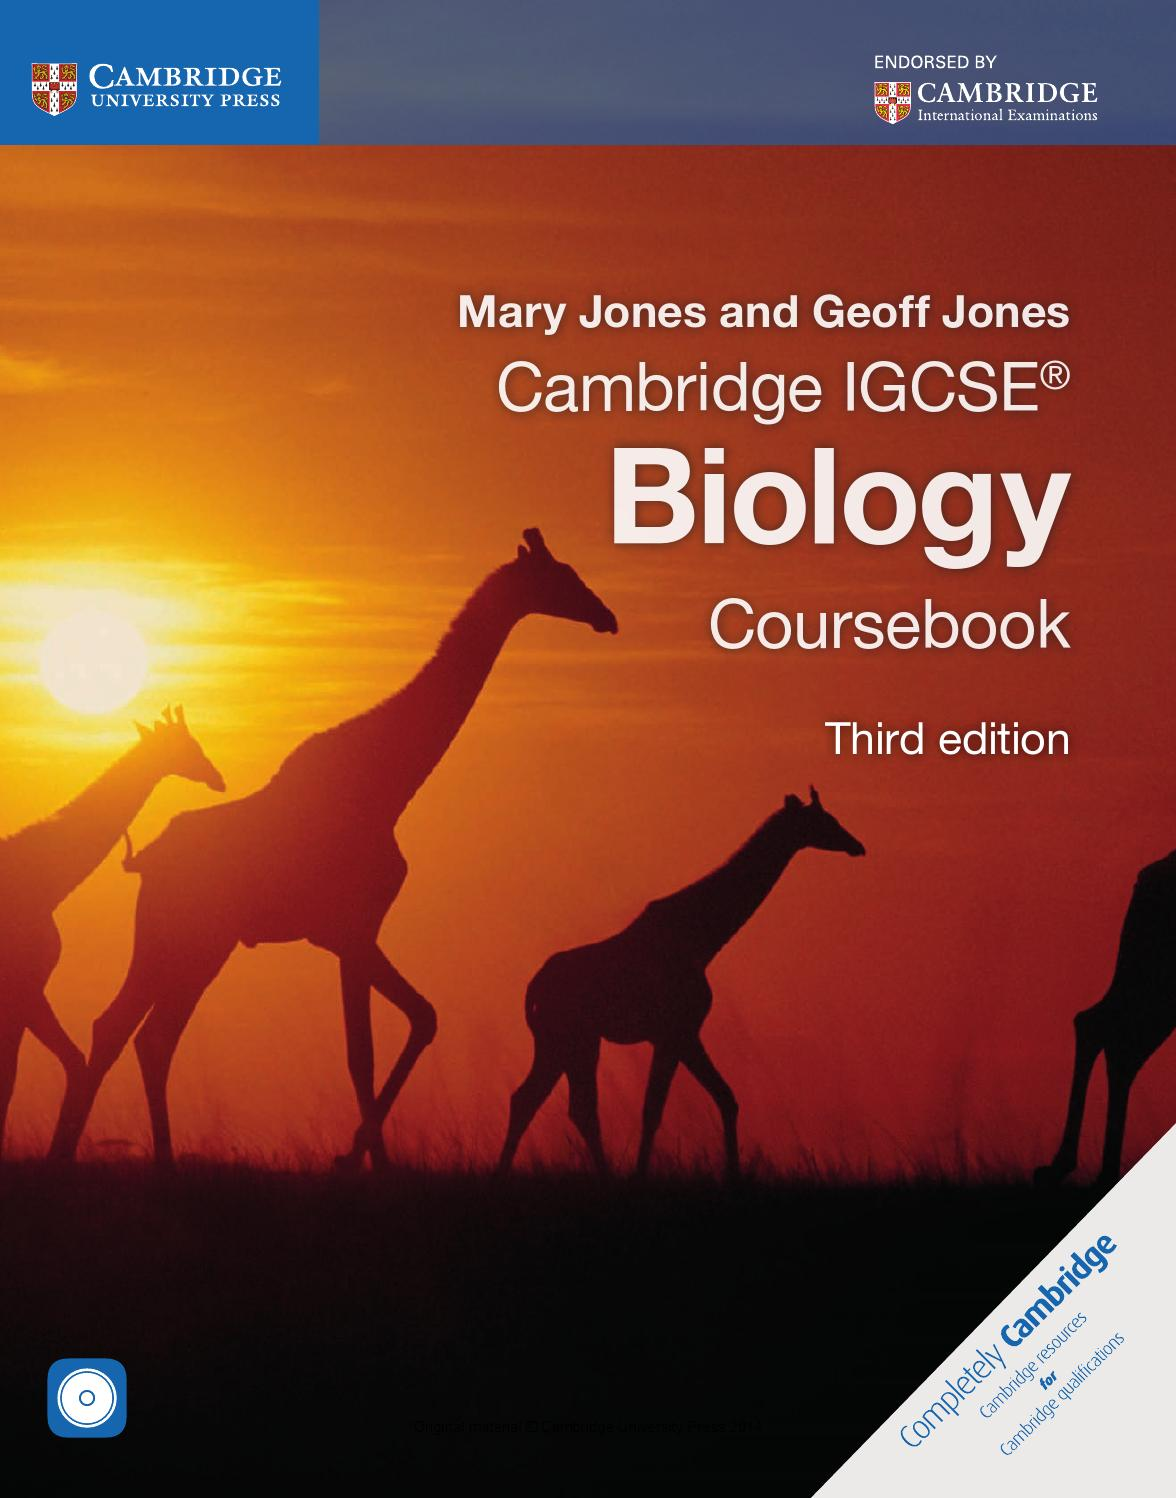 Cambridge Igcse Biology Coursebook Third Edition By Cambridge